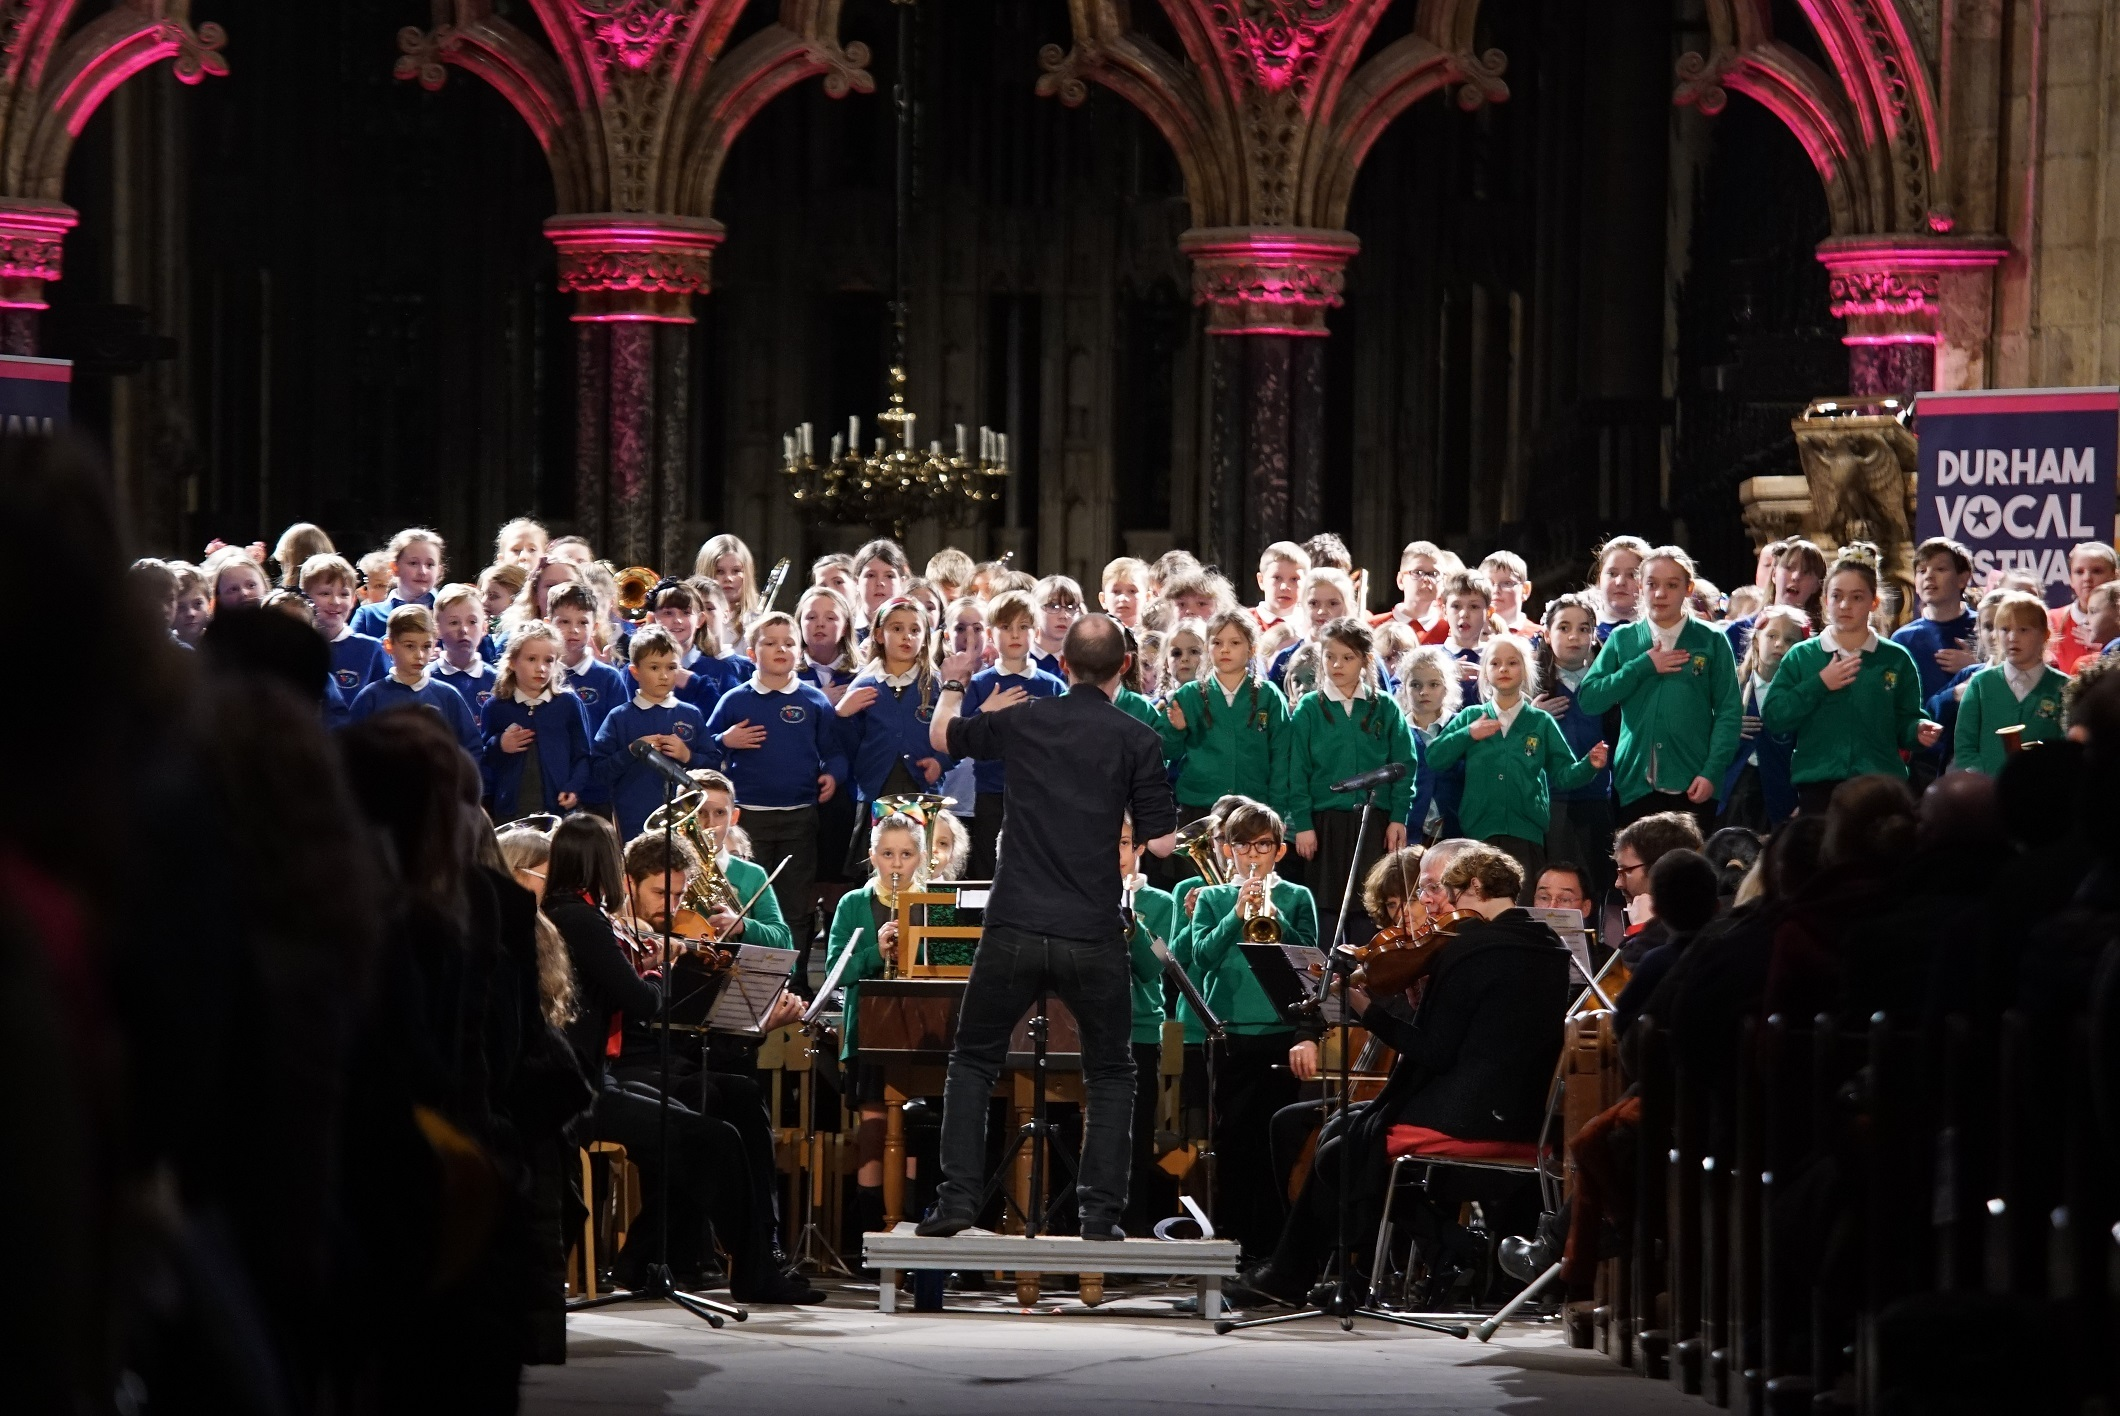 Orchestra for the Age of Enlightenment: Fairy Queen, performed with 250 primary pupils, from 2018's Durham Vocal Festival